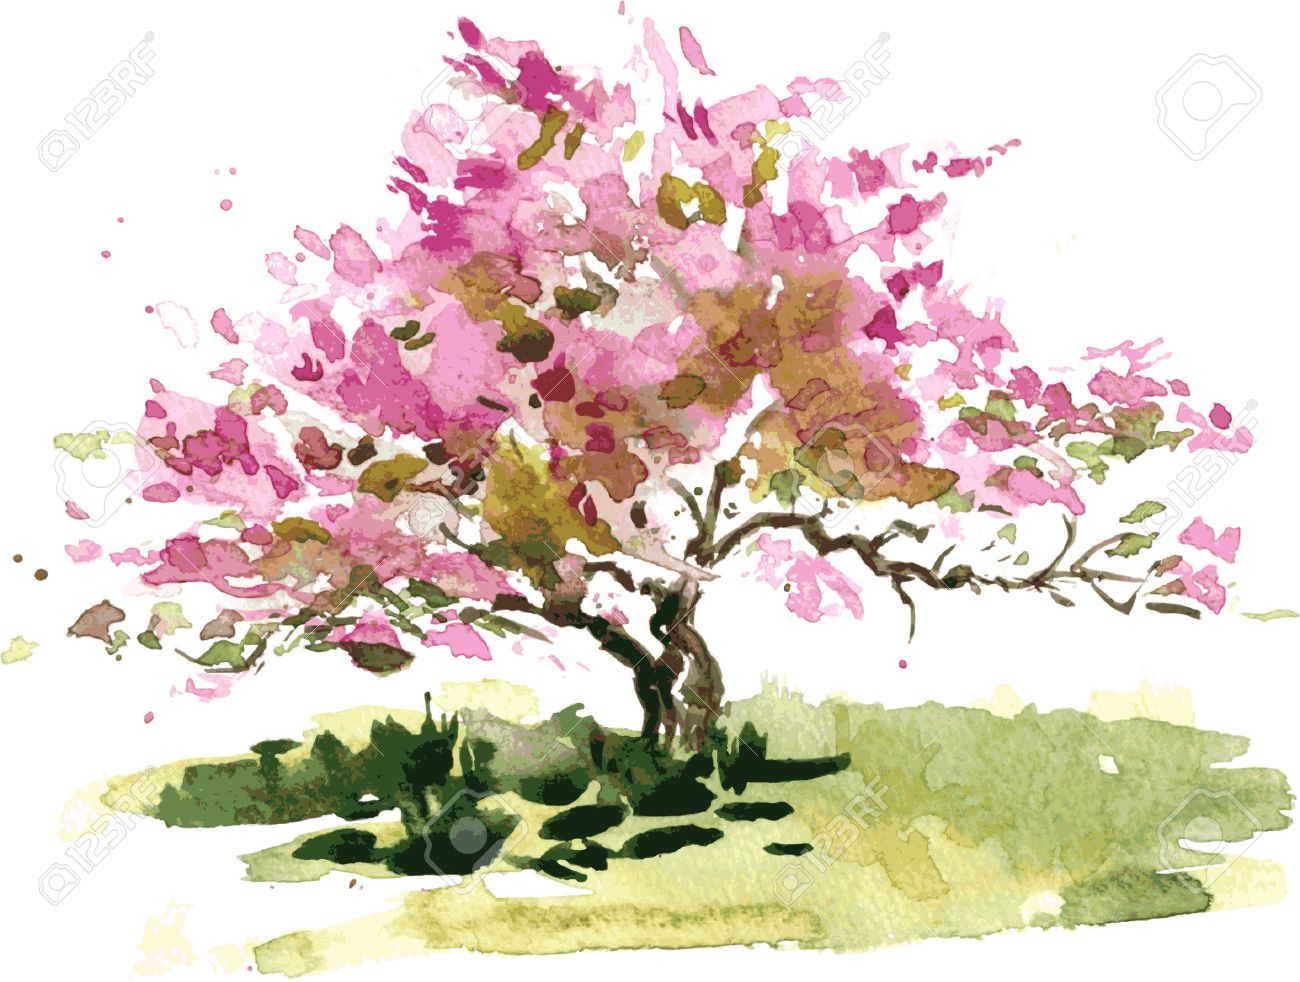 Cherry Blossom Tree Drawing By Watercolor, Aquarelle Sketch Of ... for Tree Drawing With Watercolor  585eri